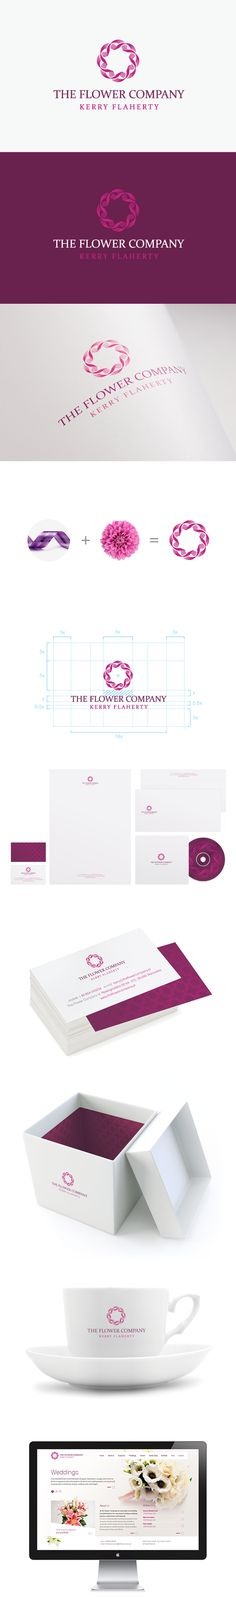 The Flower Company by kreujemy.to | #stationary #corporate #design #corporatedesign #logo #identity #branding #marketing <<< repinned by an #advertising agency from #Hamburg / #Germany - www.BlickeDeeler.de | Follow us on www.facebook.com/BlickeDeeler